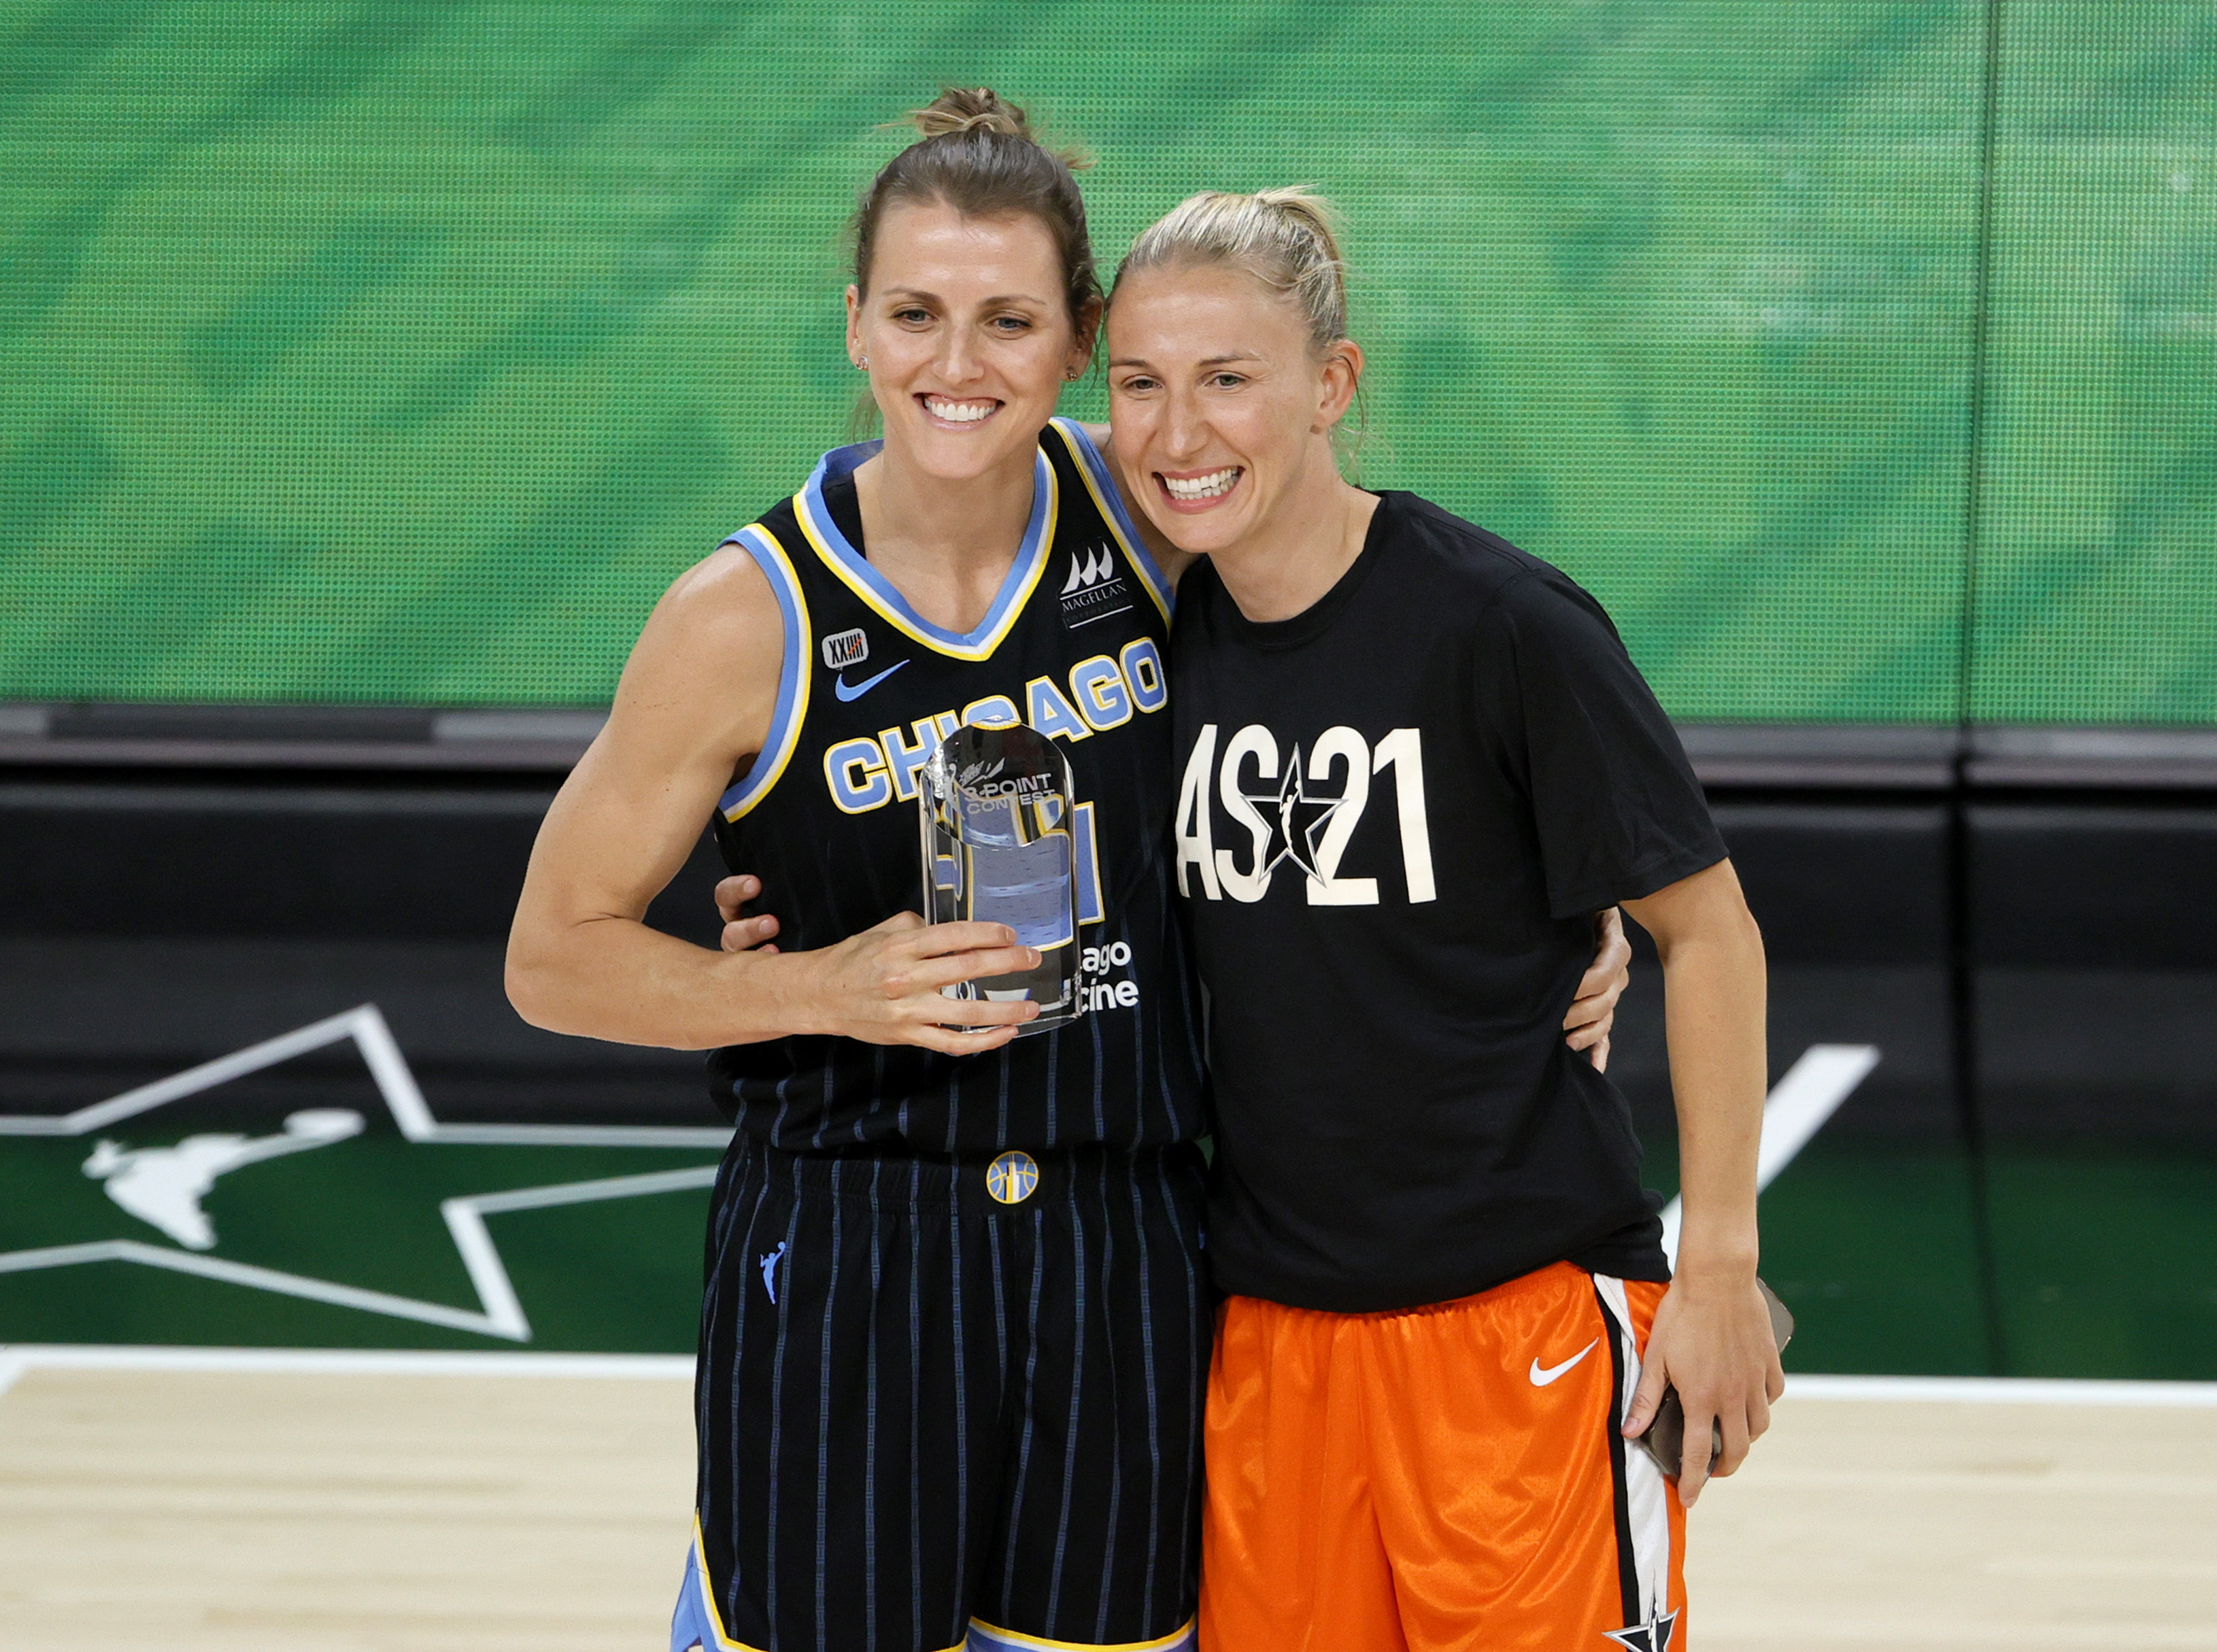 Allie Quigley (left) and wife Courtney Vandersloot pose after Quigley won the three-point contest at the 2021 WNBA All-Star Game in Las Vegas.